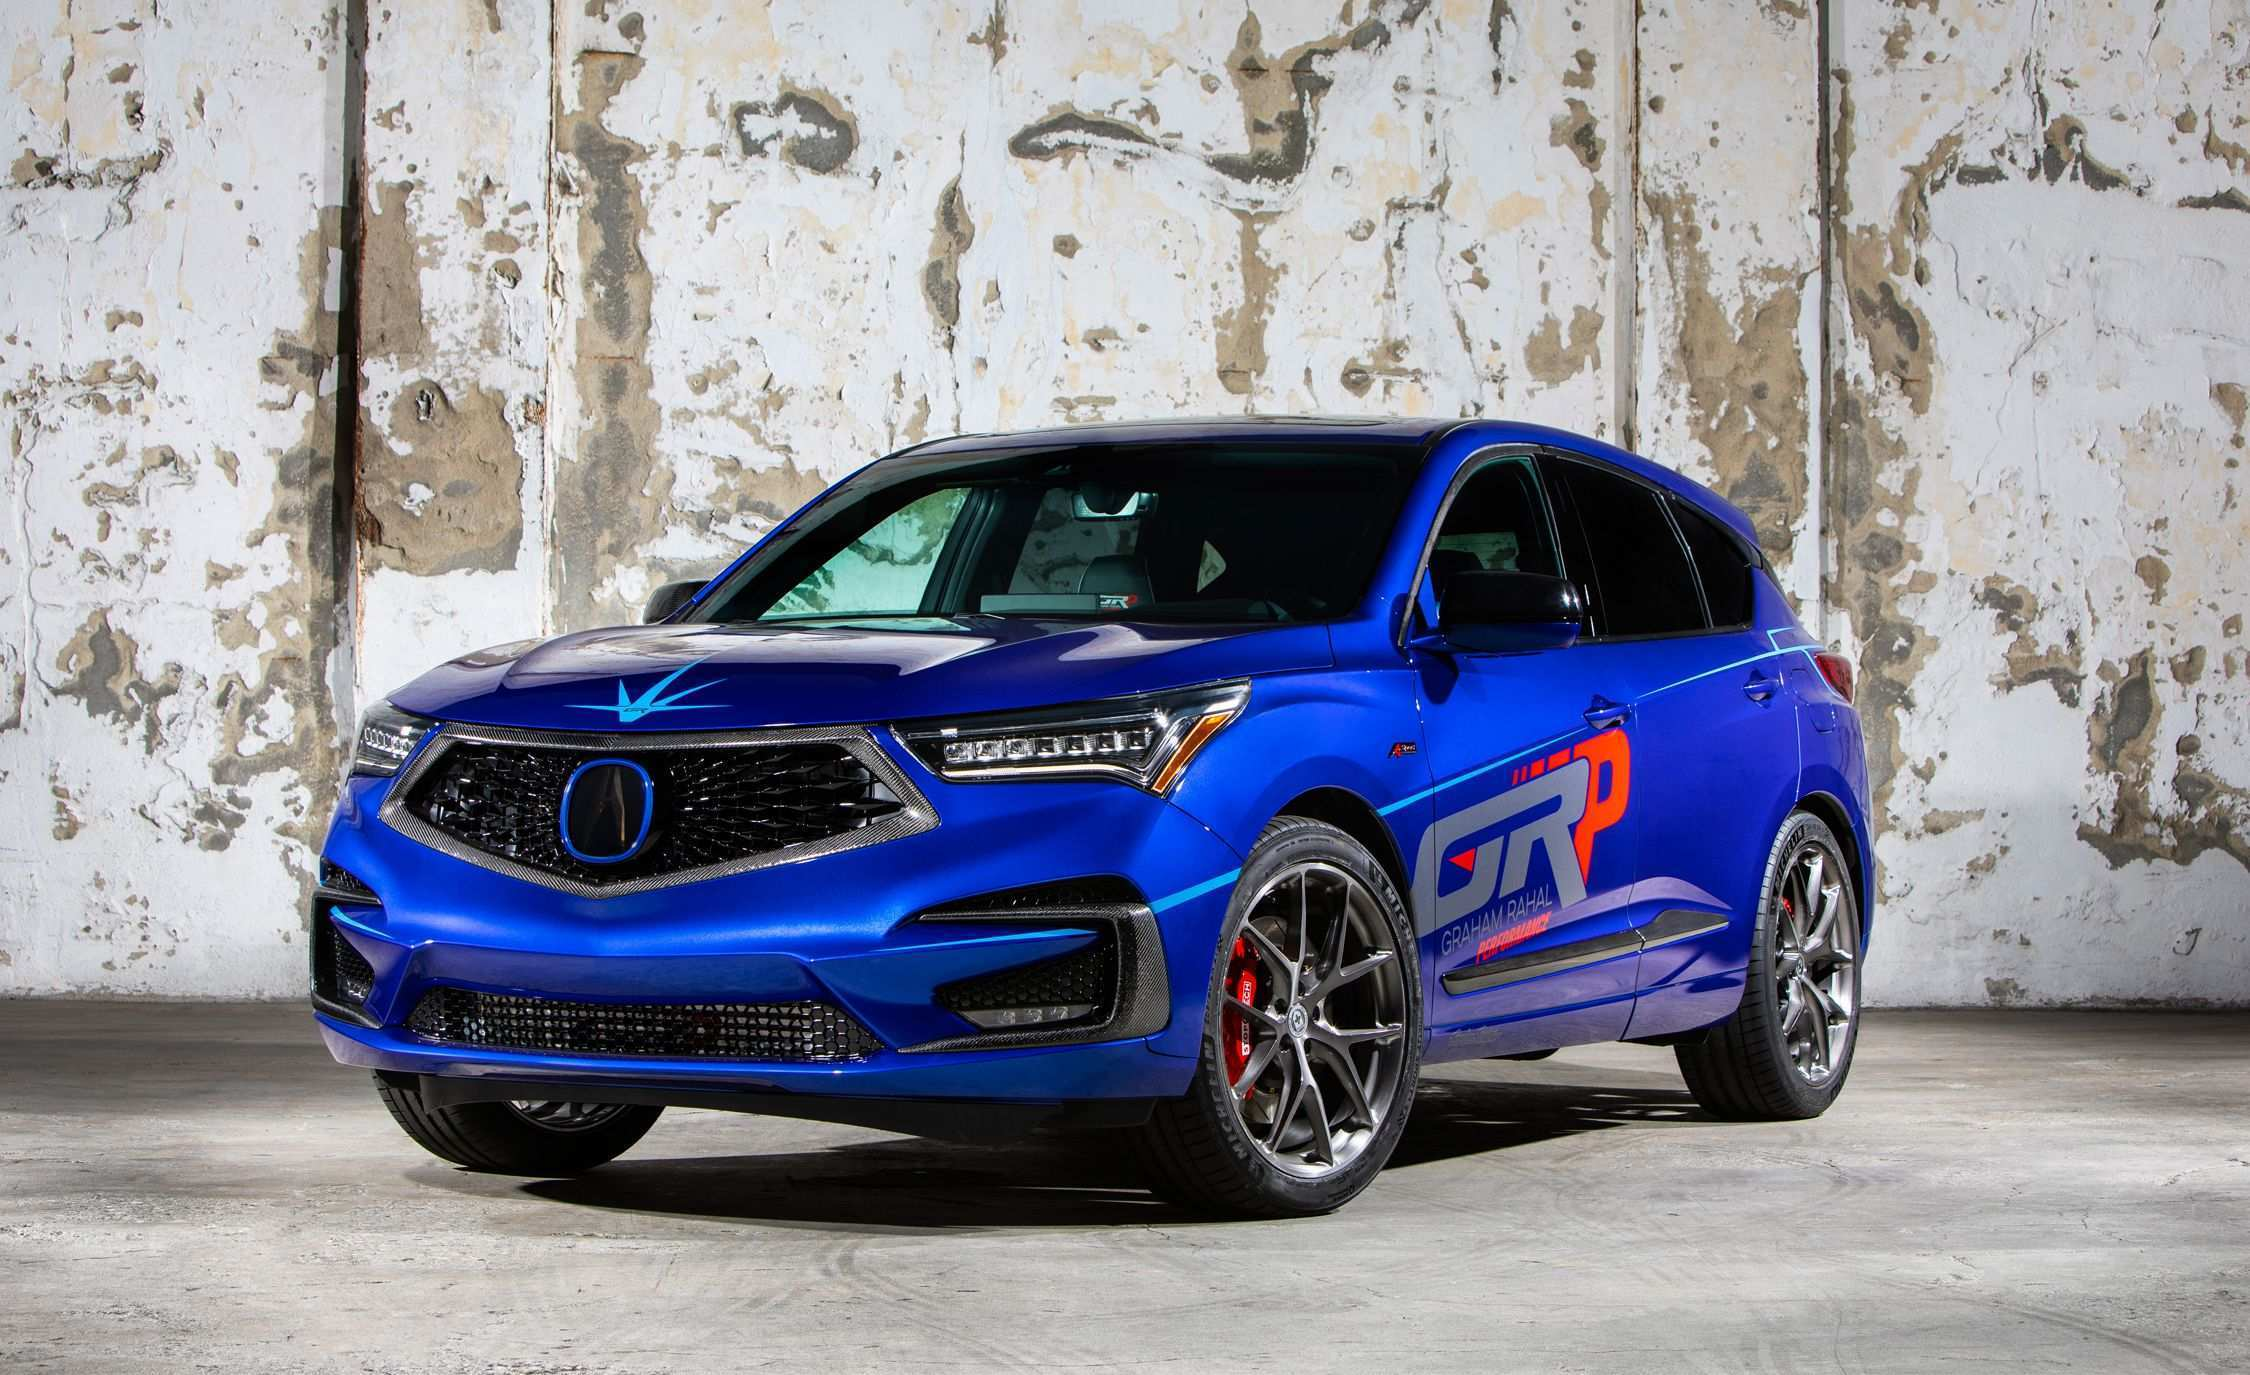 87 Concept of The 2019 Acura Rdx Edmunds Review And Price Pricing by The 2019 Acura Rdx Edmunds Review And Price